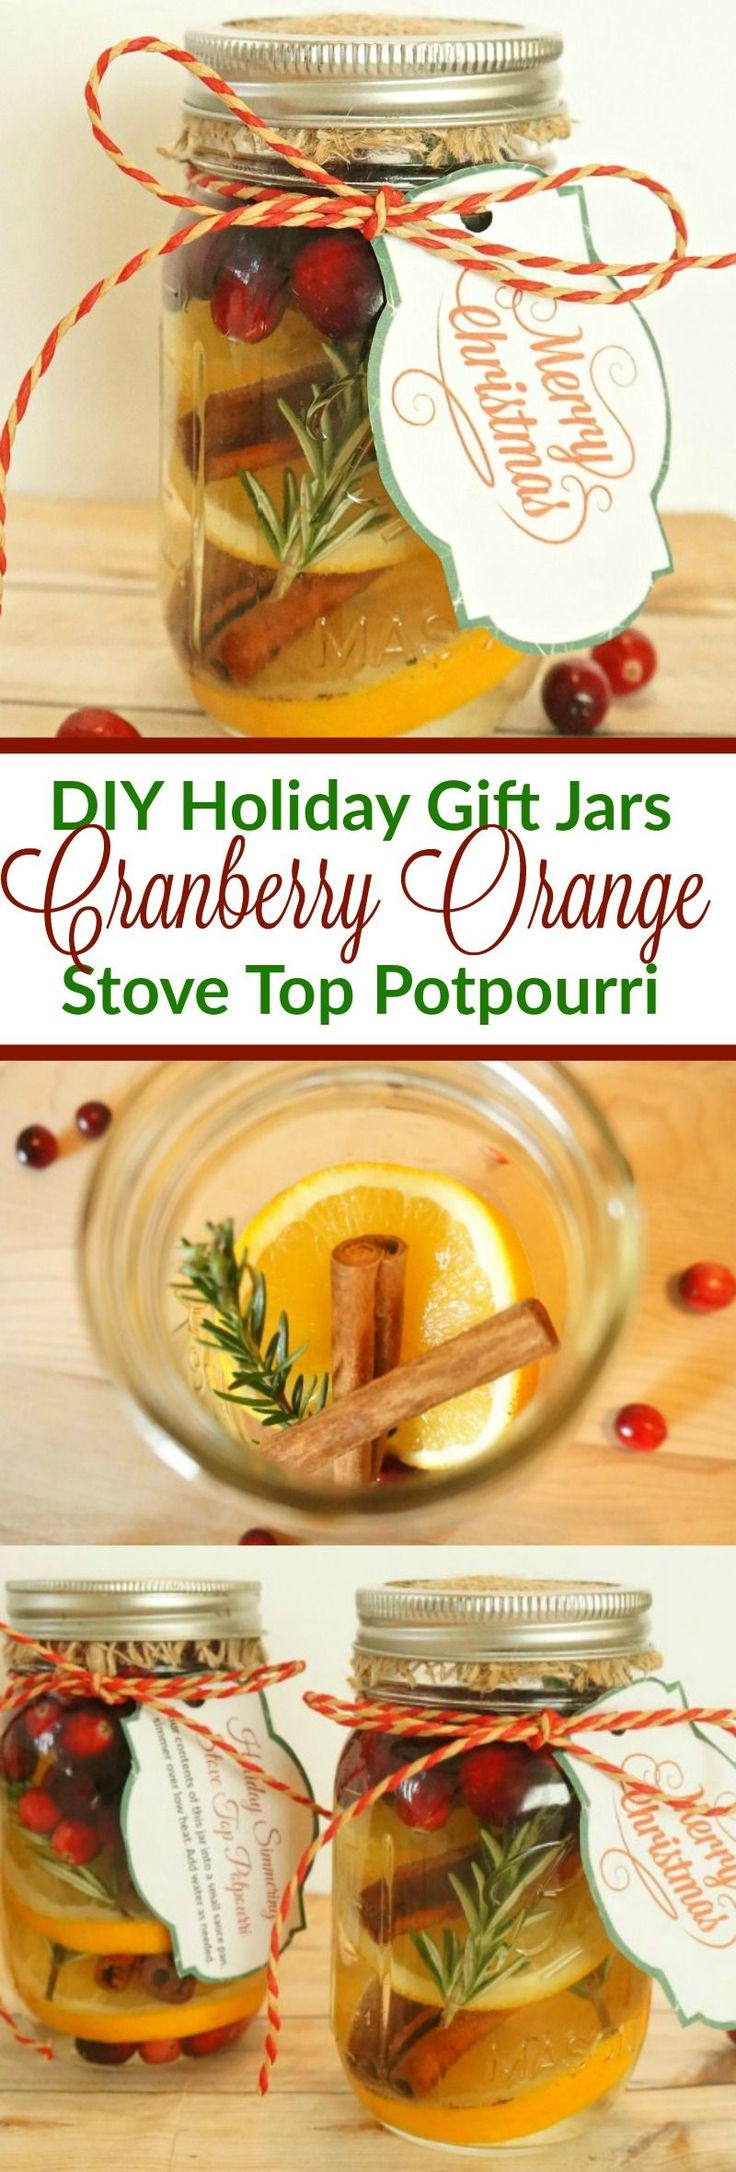 DIY Holiday Gift Mason Jars - How To Make Cranberry Orange Stove Top Potpourri